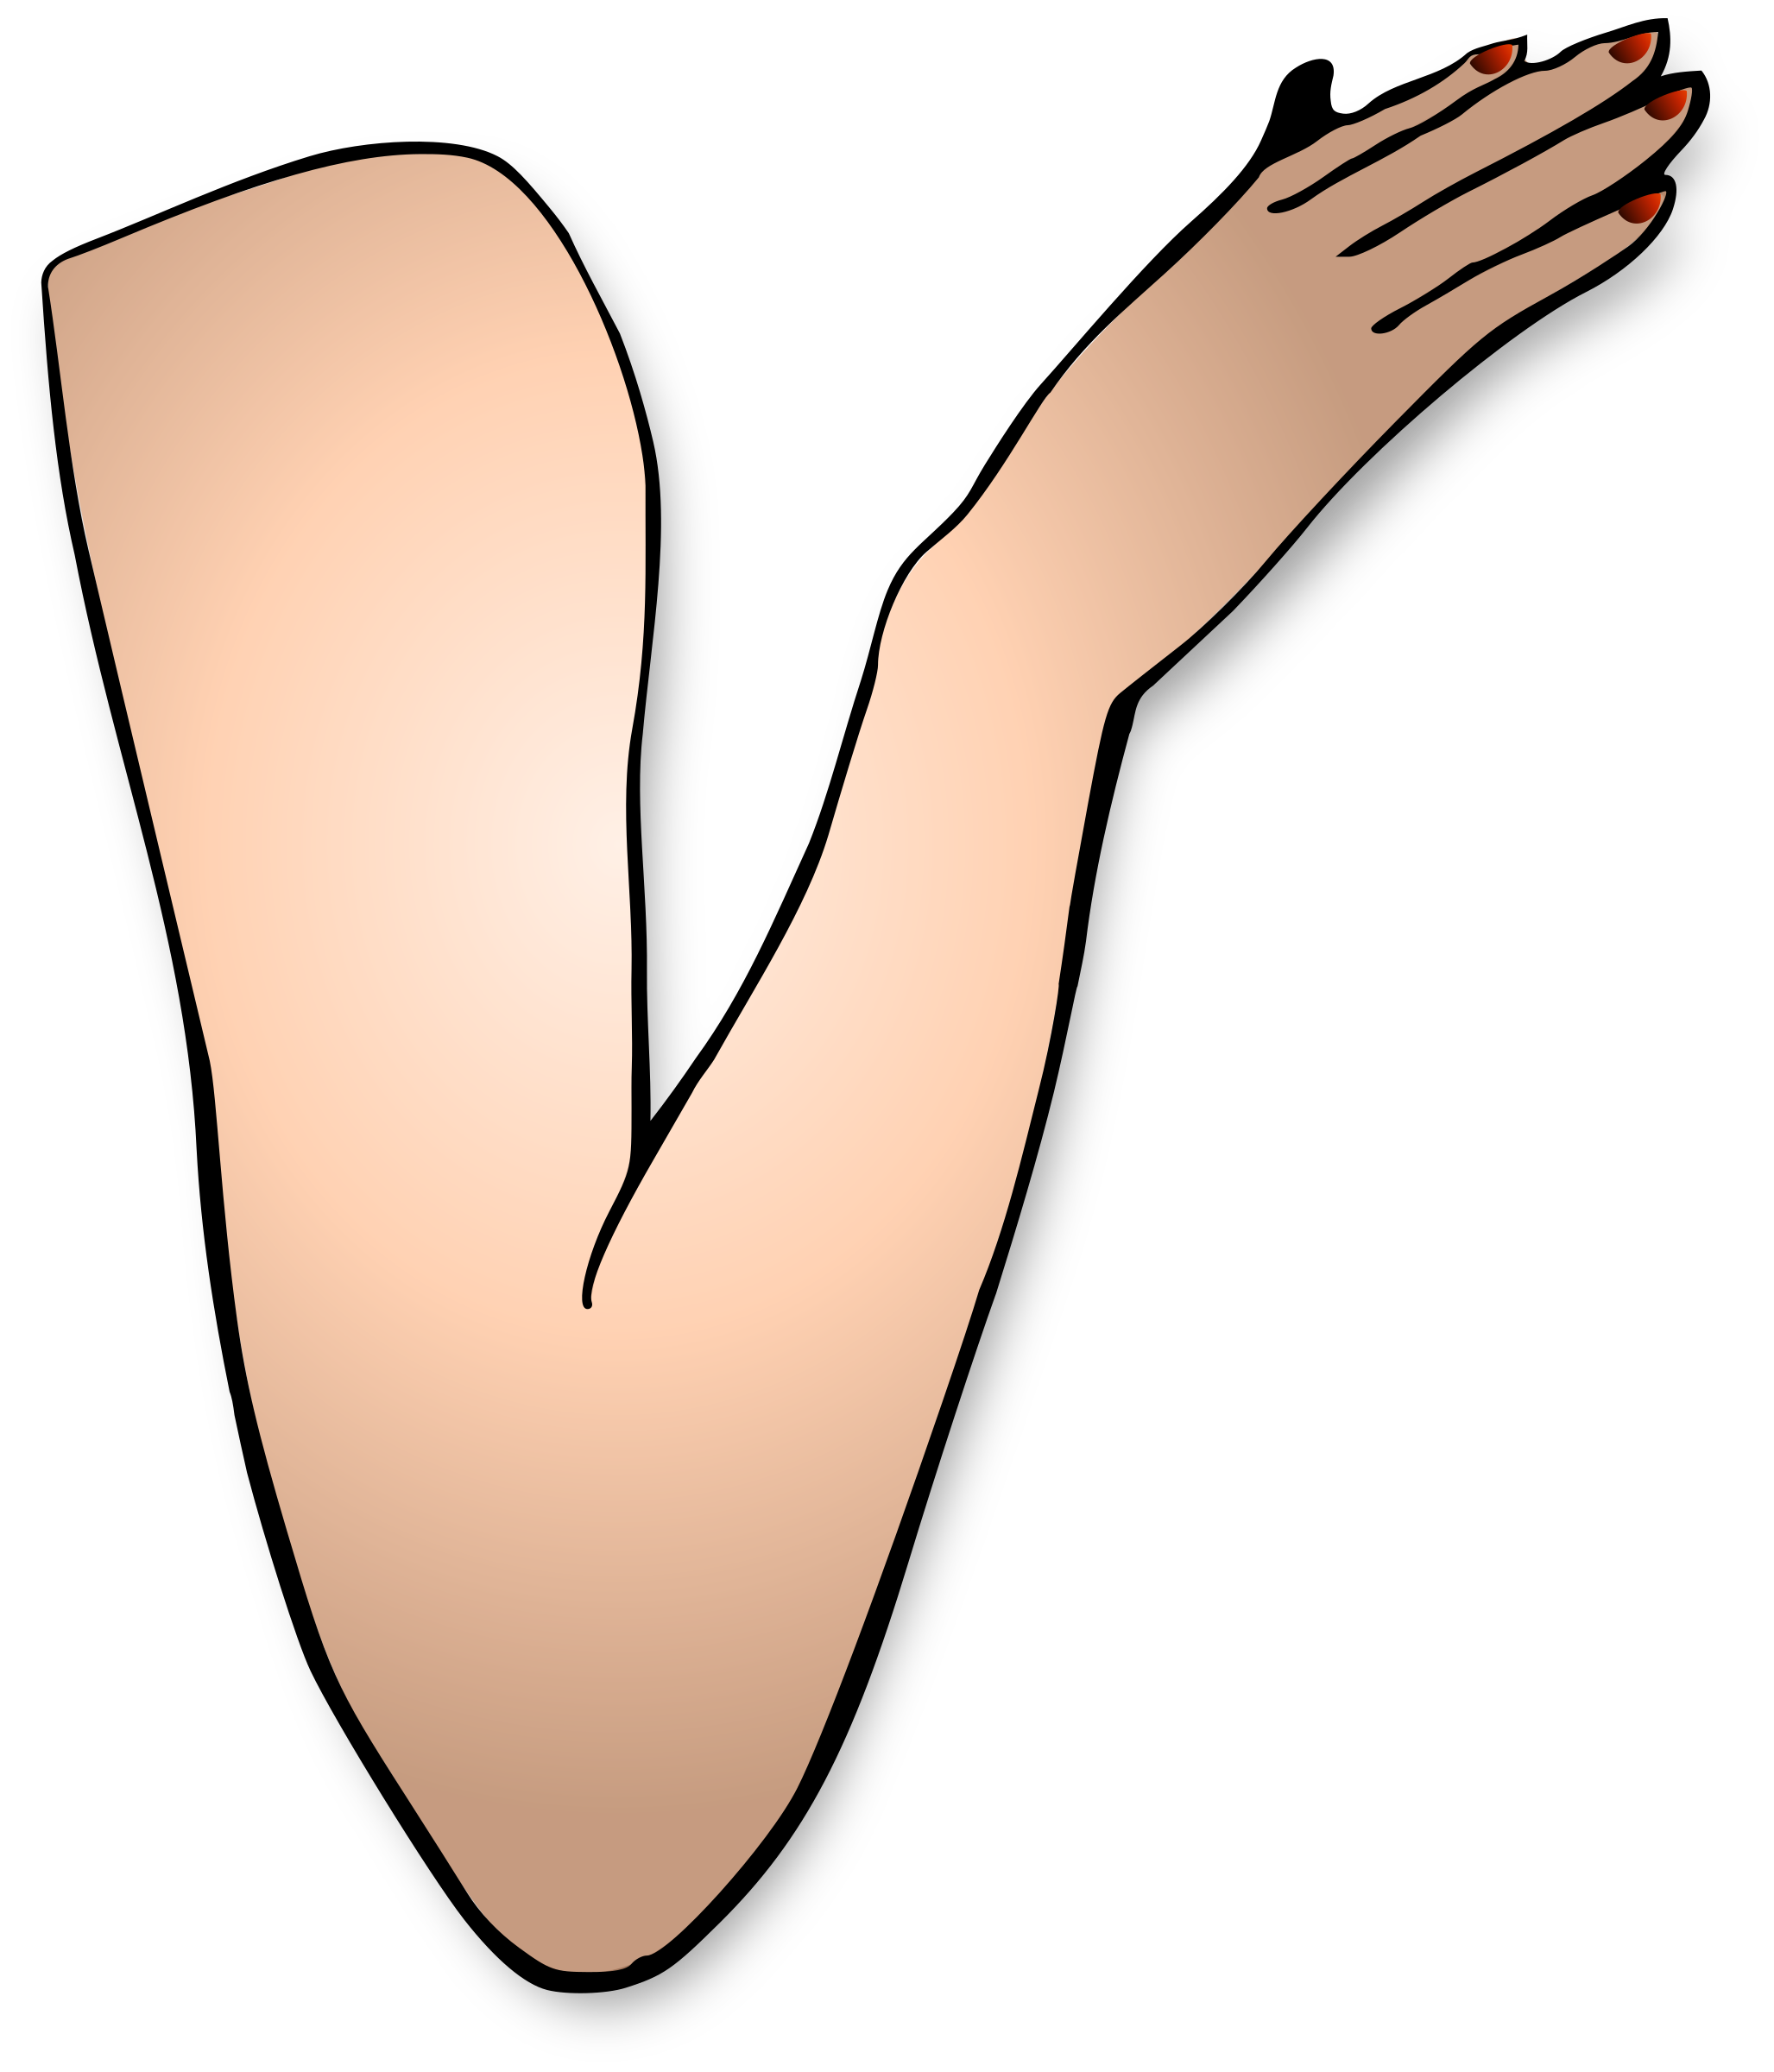 Arm Image PNG Image